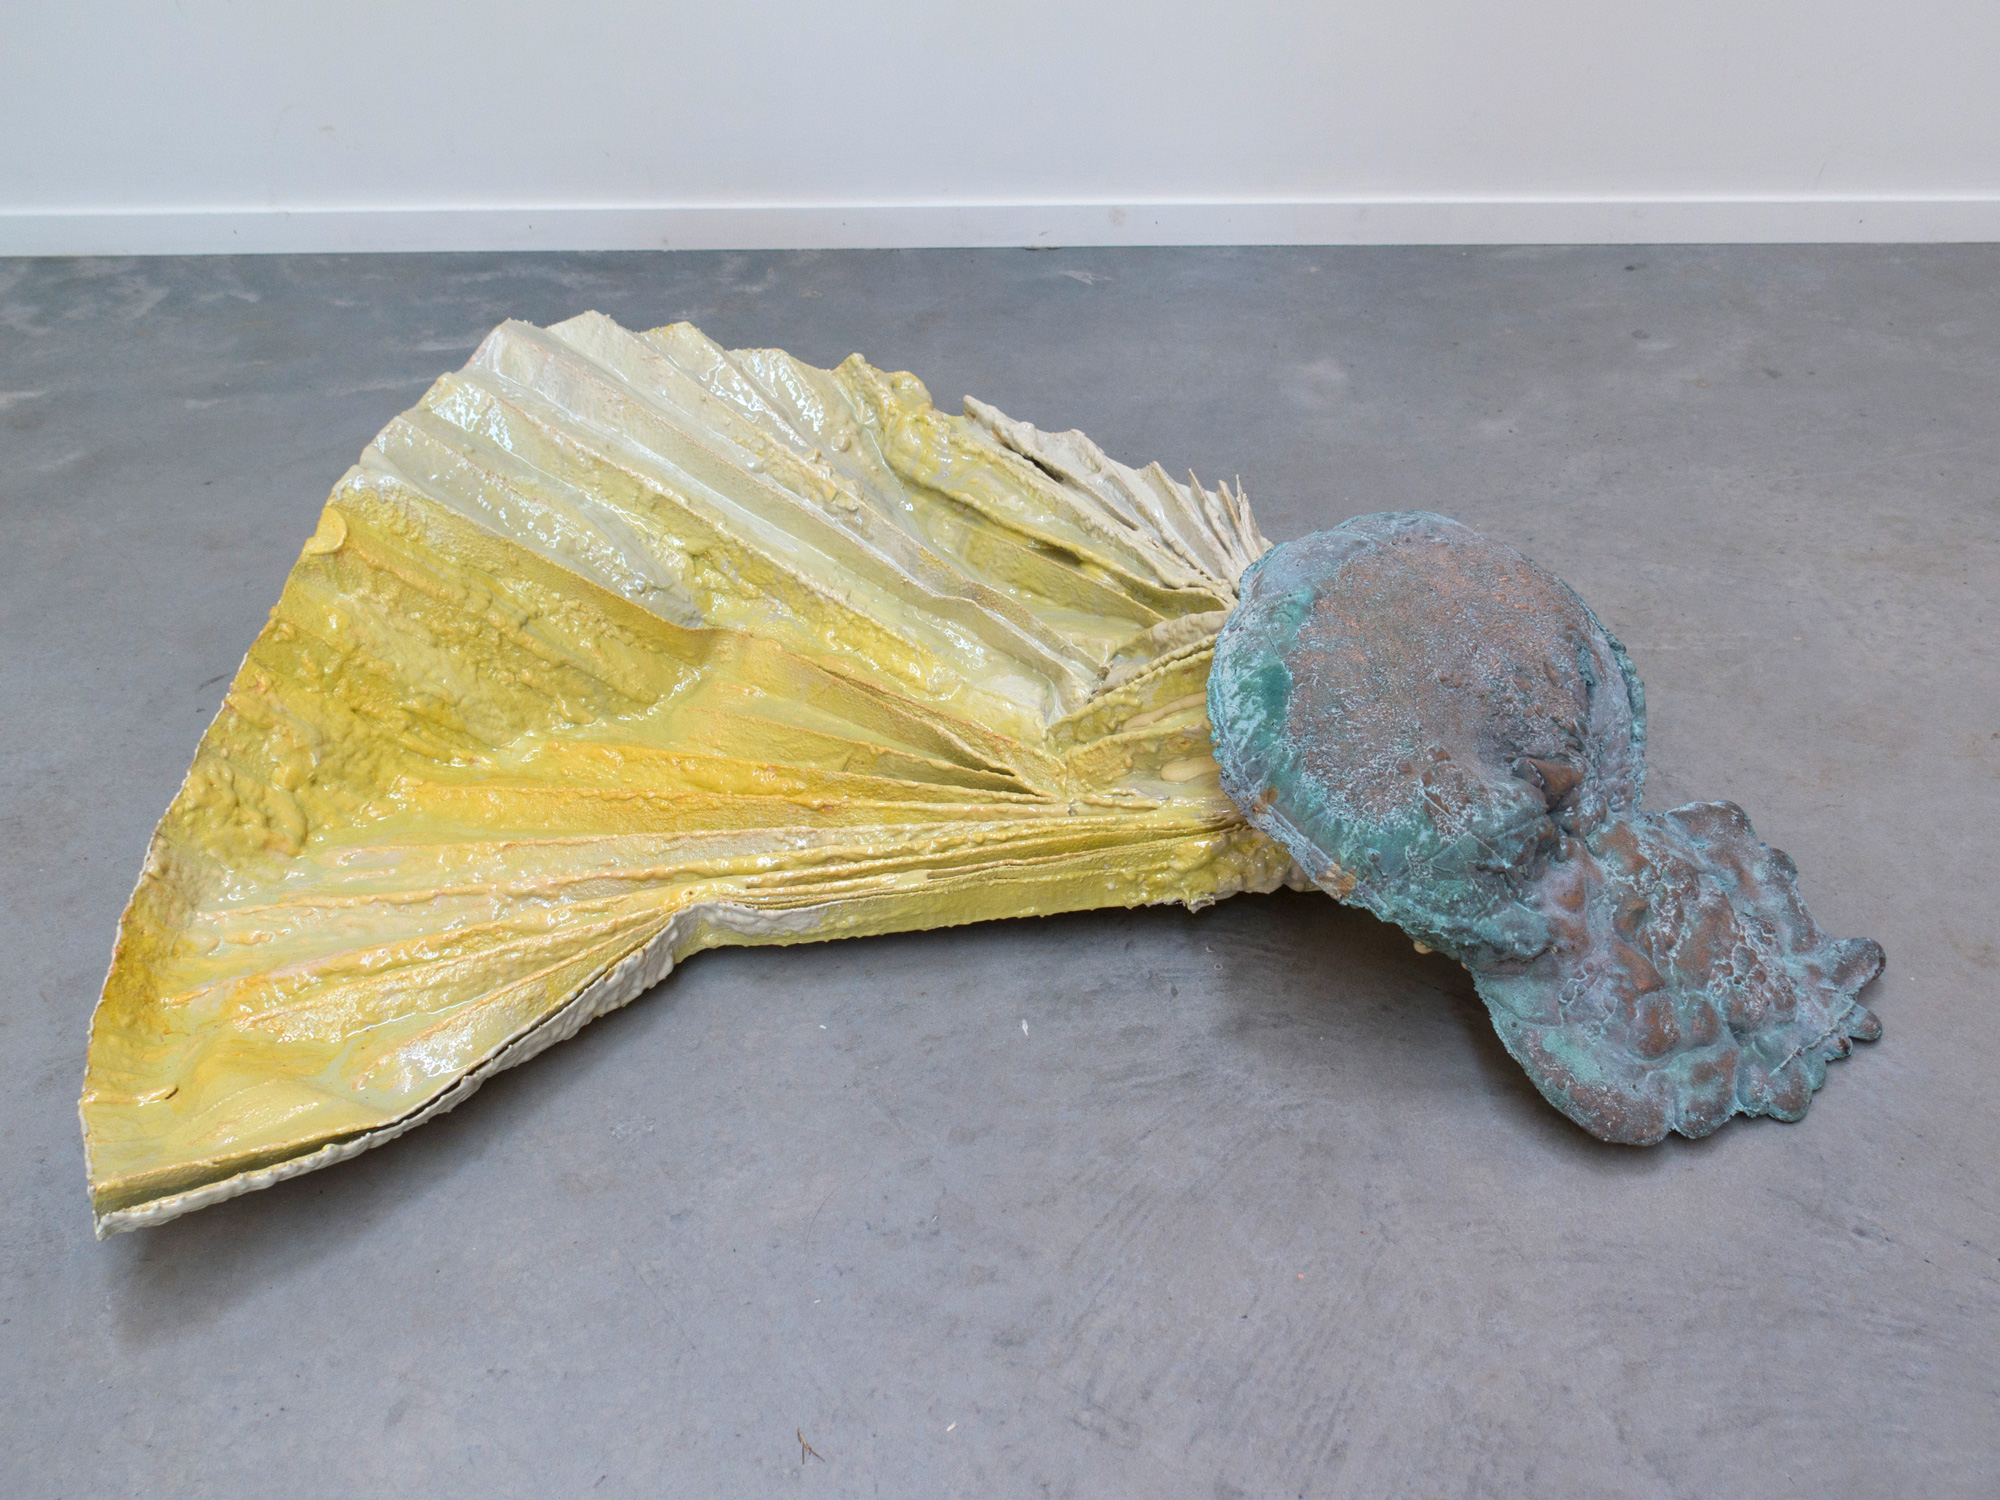 SUTURES Untitled  2018 Textile, bronze, brushable, plastic, pigments 44 x 30 x 10 inches (120 x 100 x 25 cm) 2018 Marc Straus Gallery